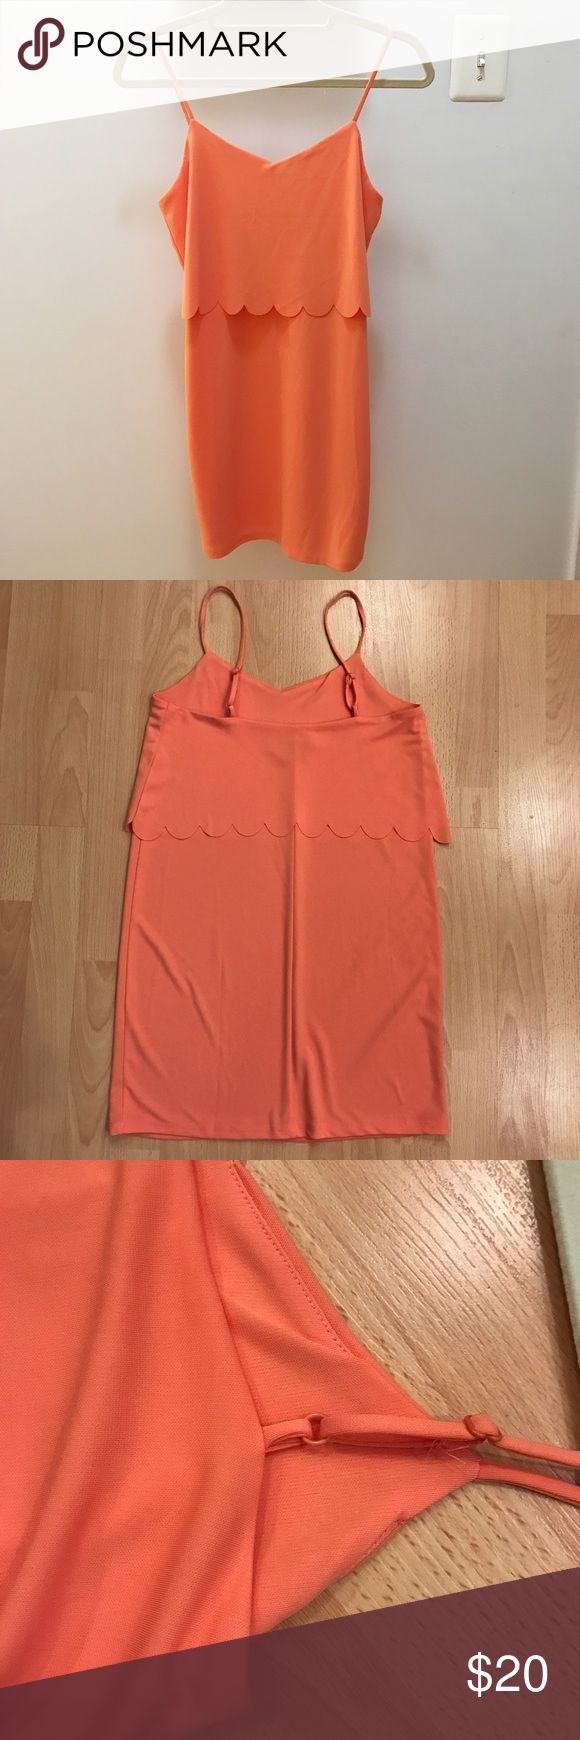 ASOS: Coral Cami Dress With Scallop Layer Coral cami dress with scallop layer. Adjustable straps. Very gently used, excellent condition! ASOS Petite Dresses Mini